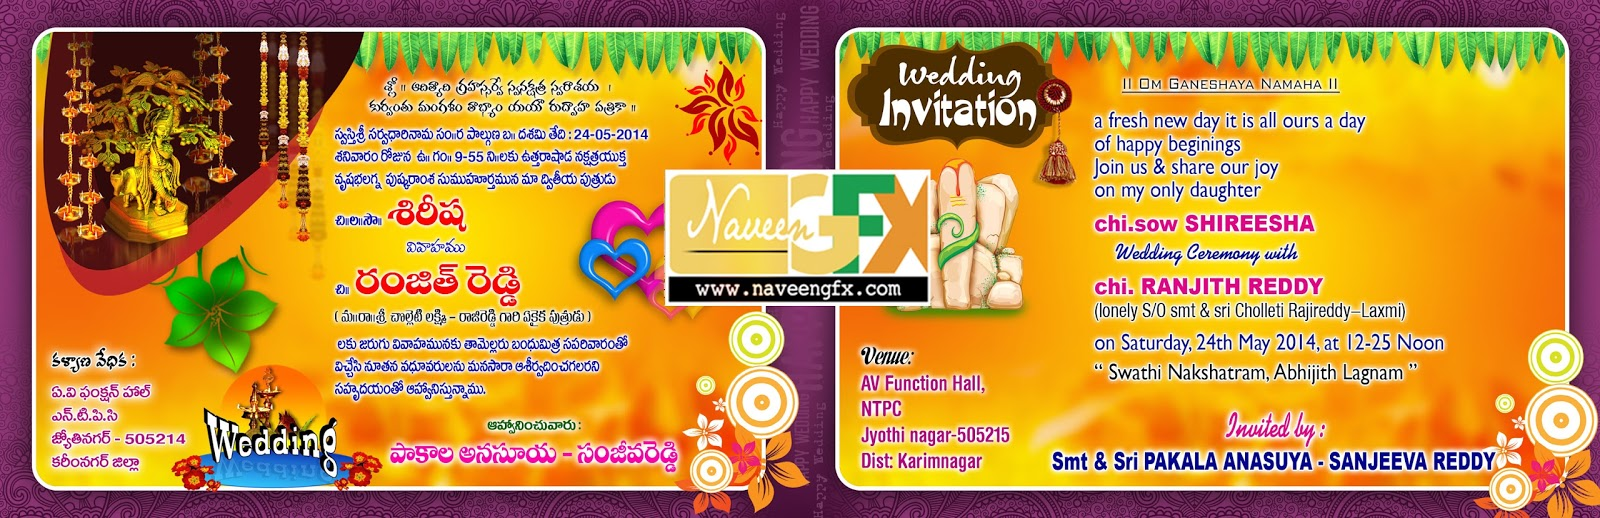 Free Wedding Invitation Templates For Word In Telugu